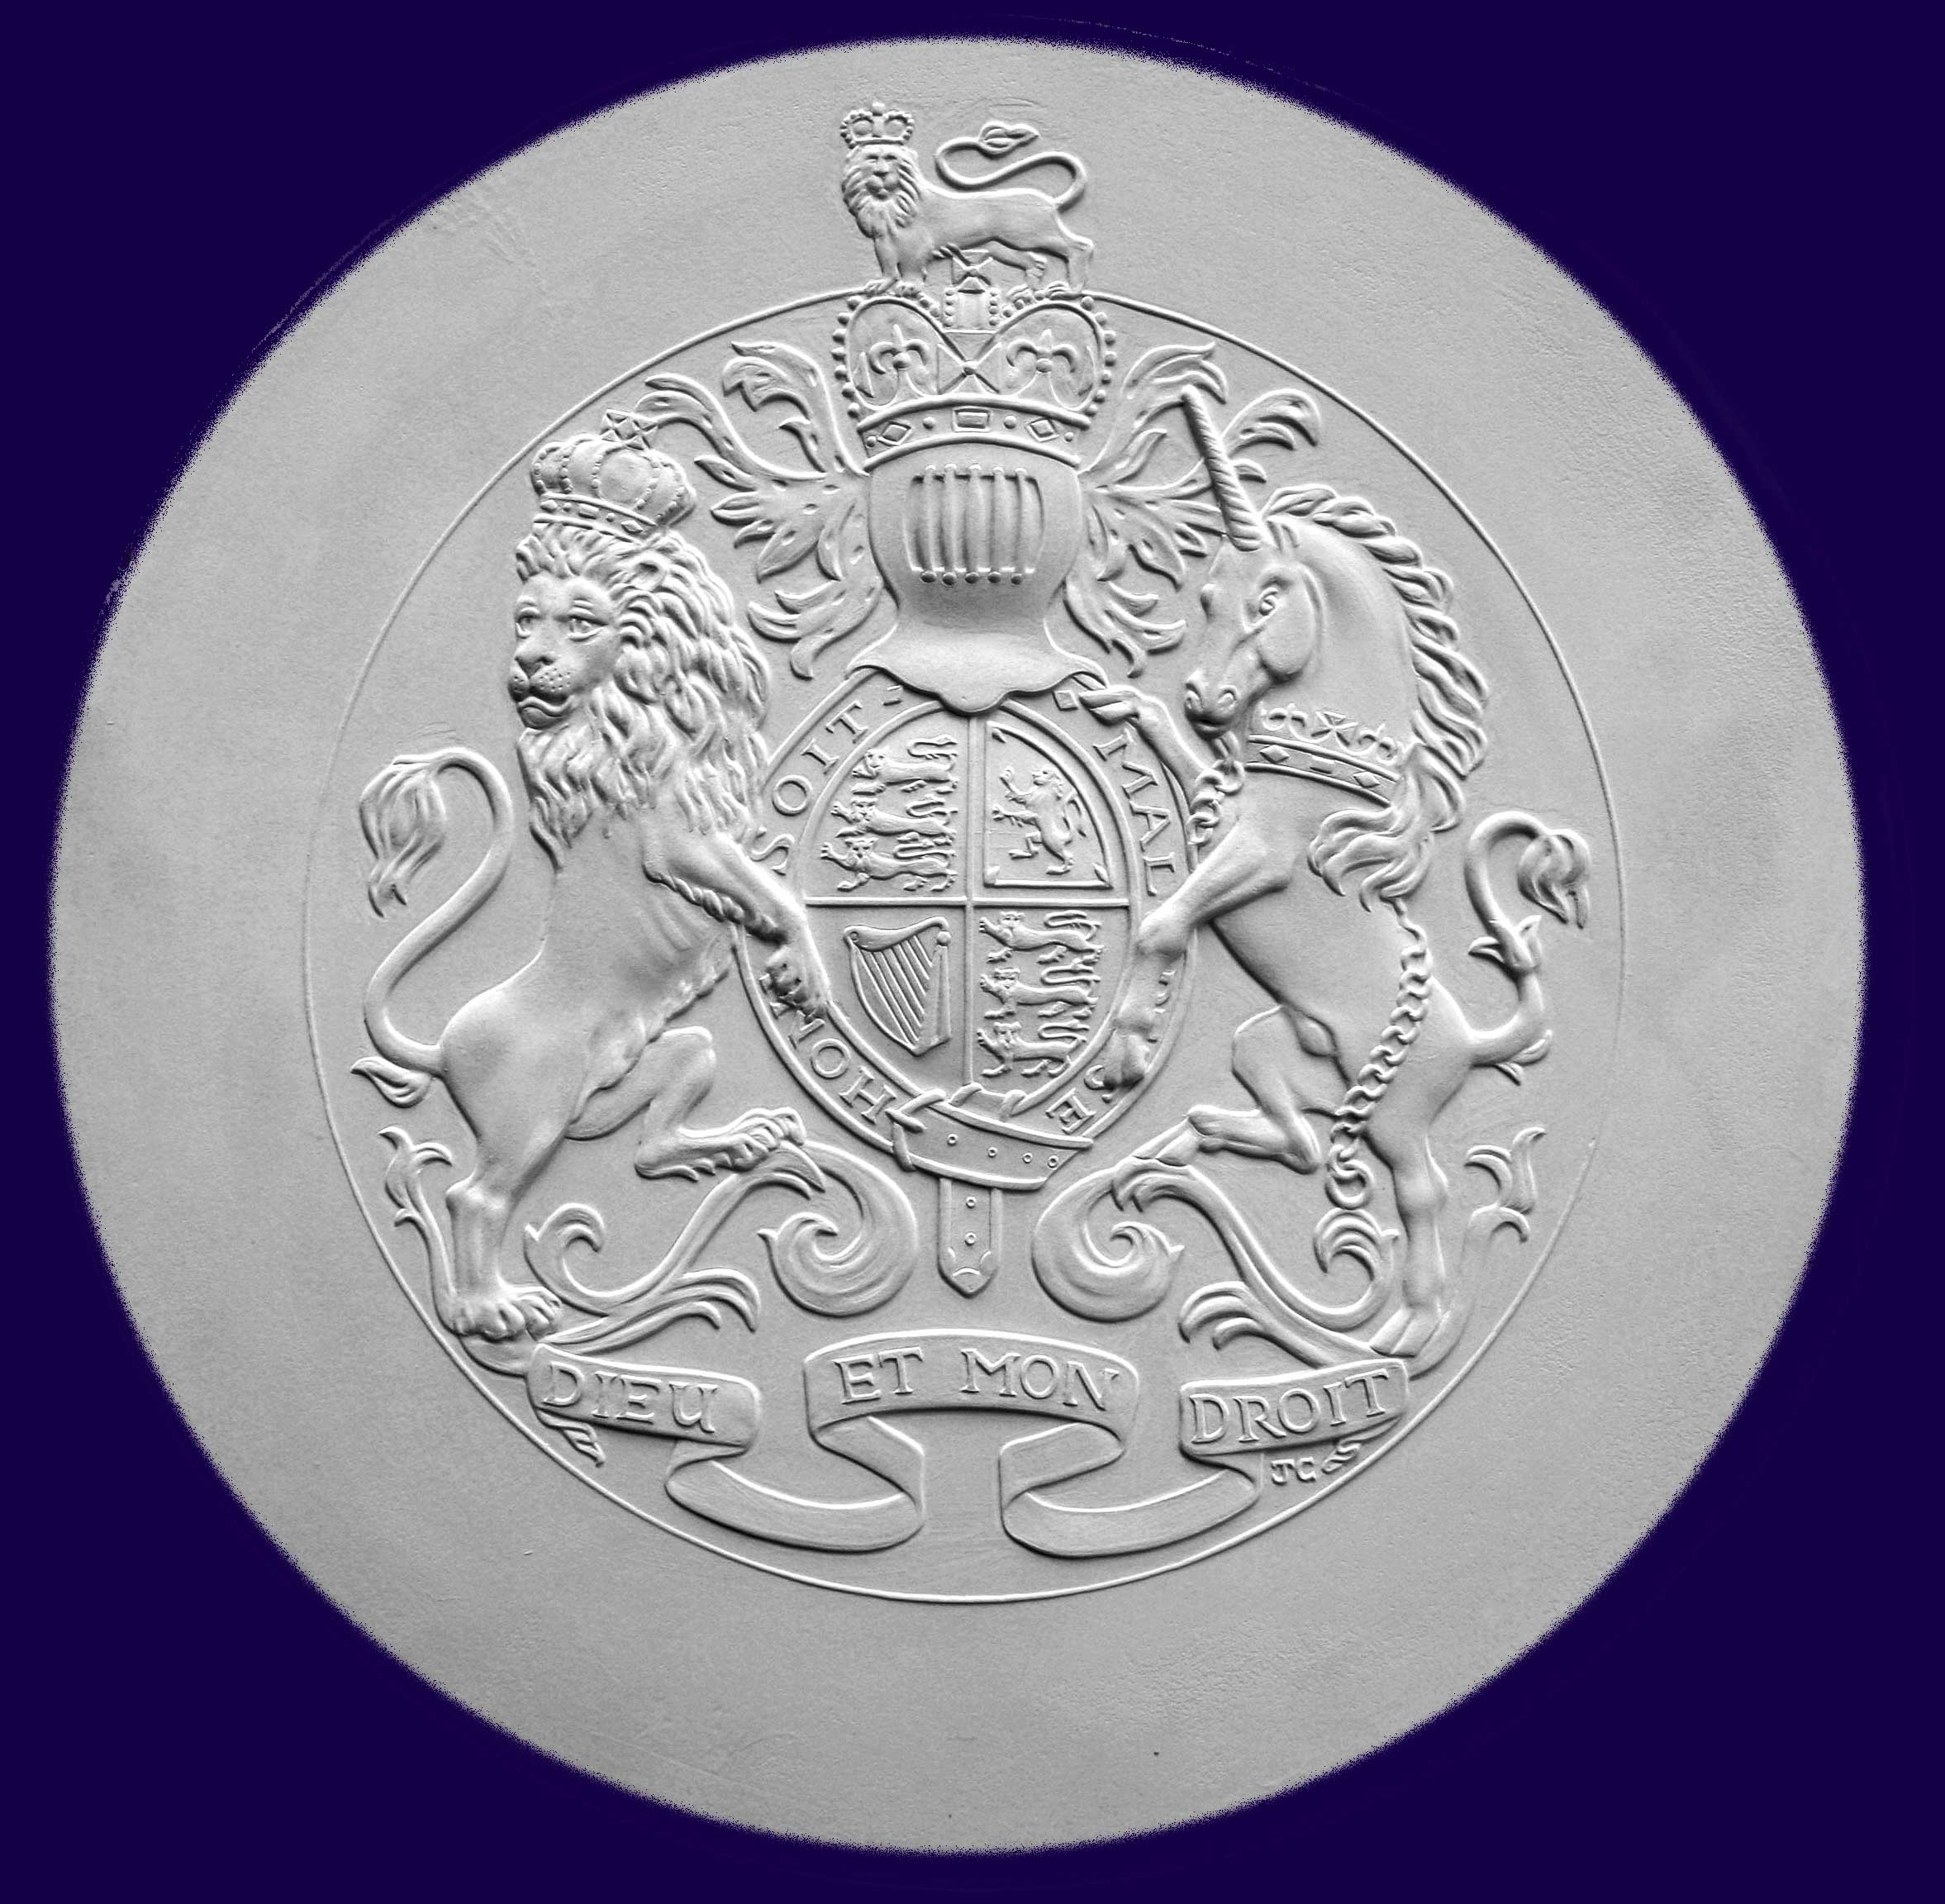 The London Mint Commemorative